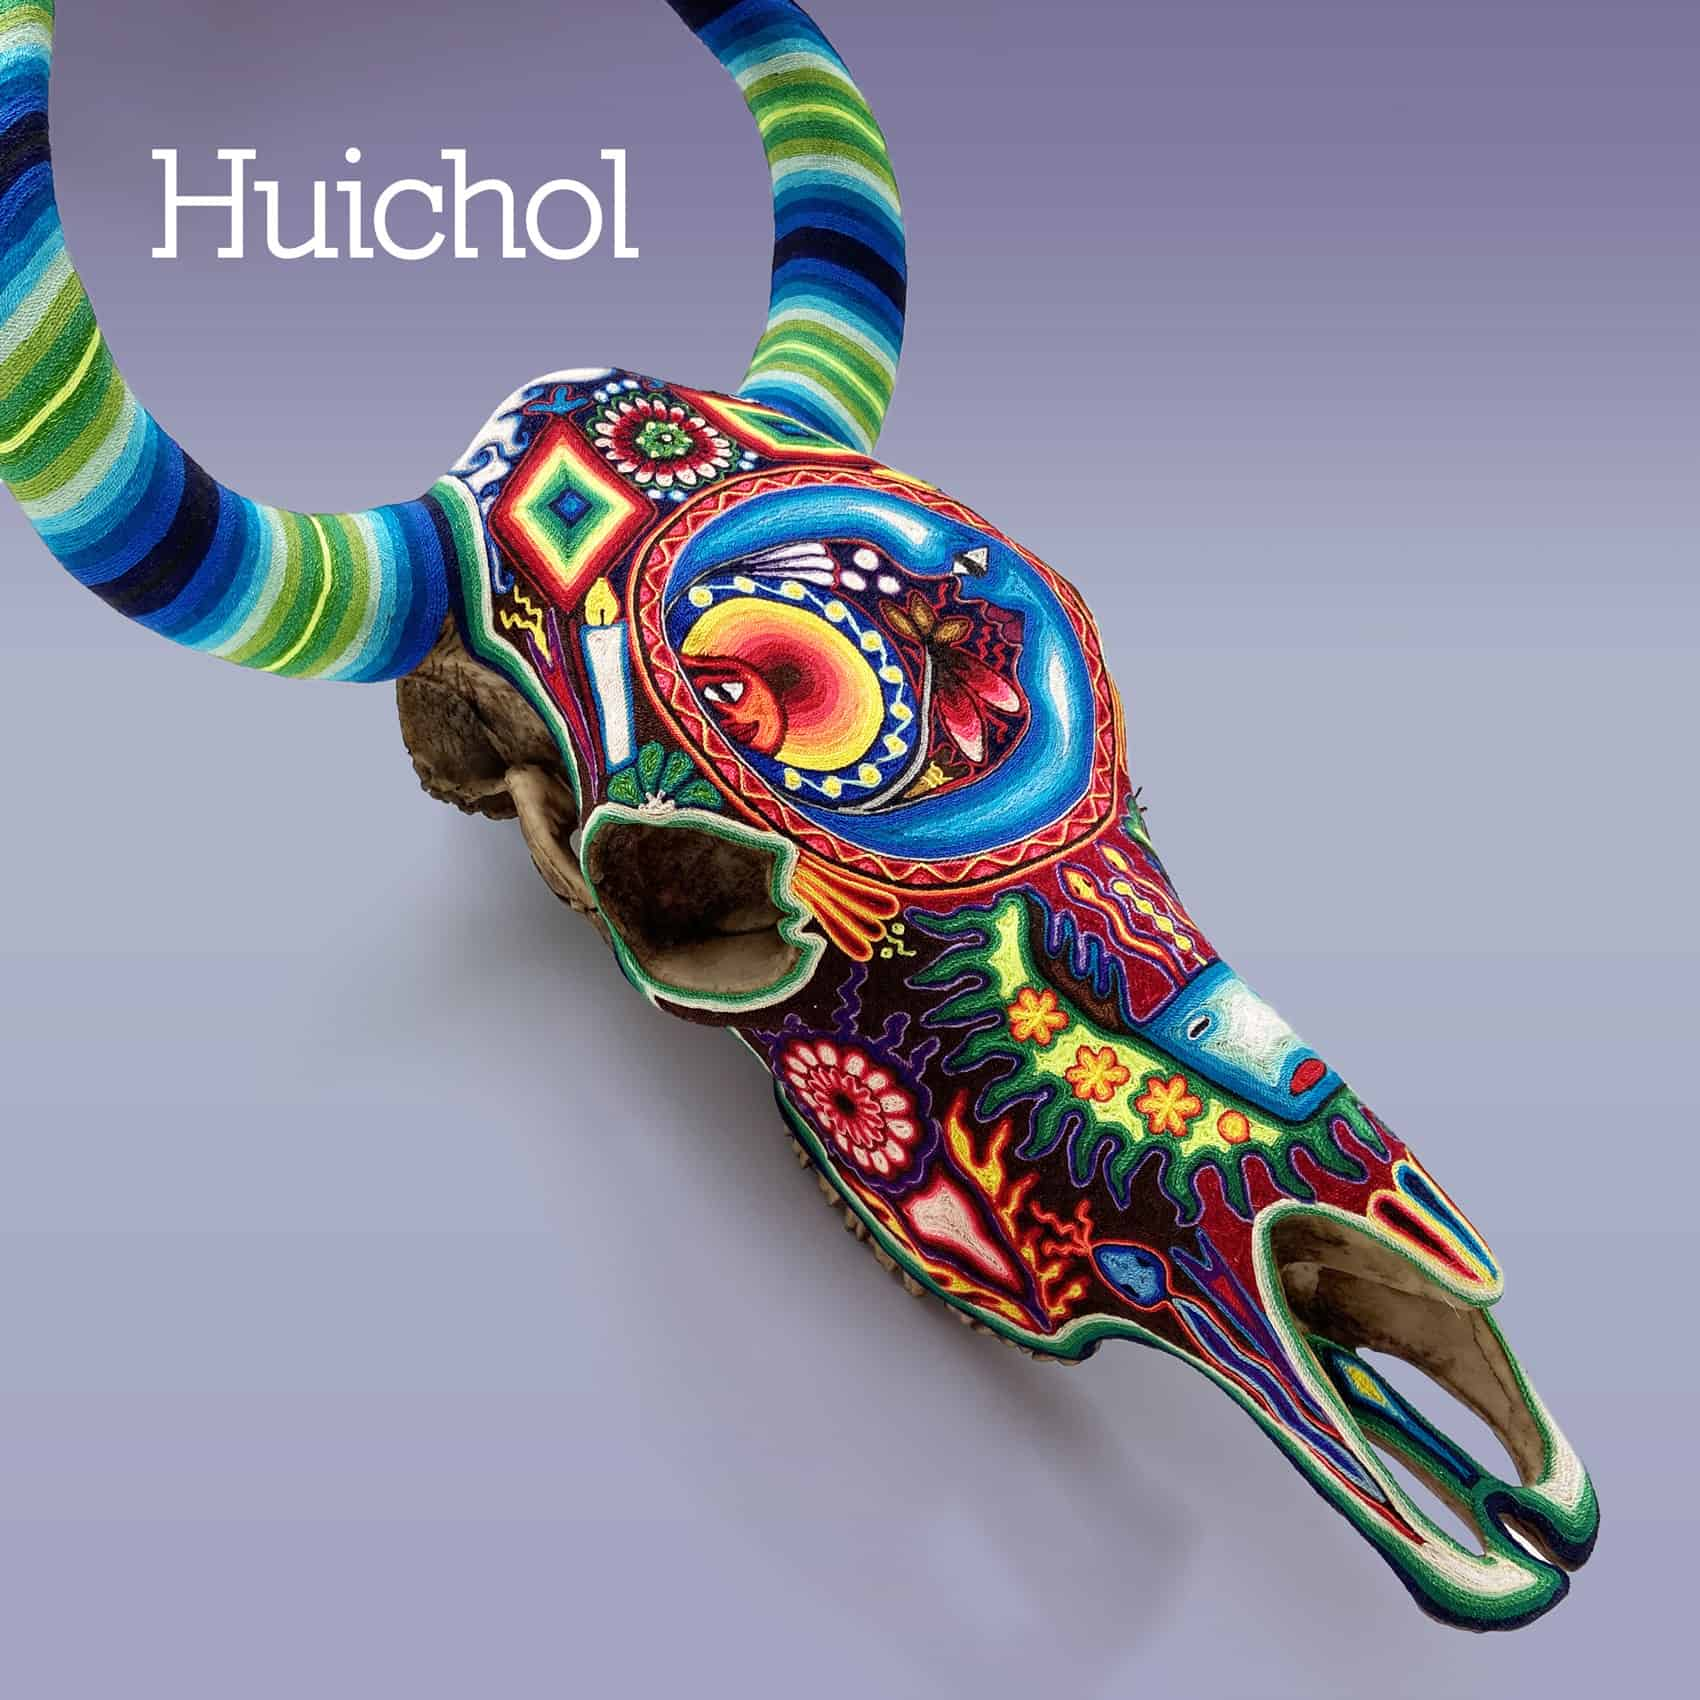 a Mexican Huichol resin cow skull decorated with colourful yarn